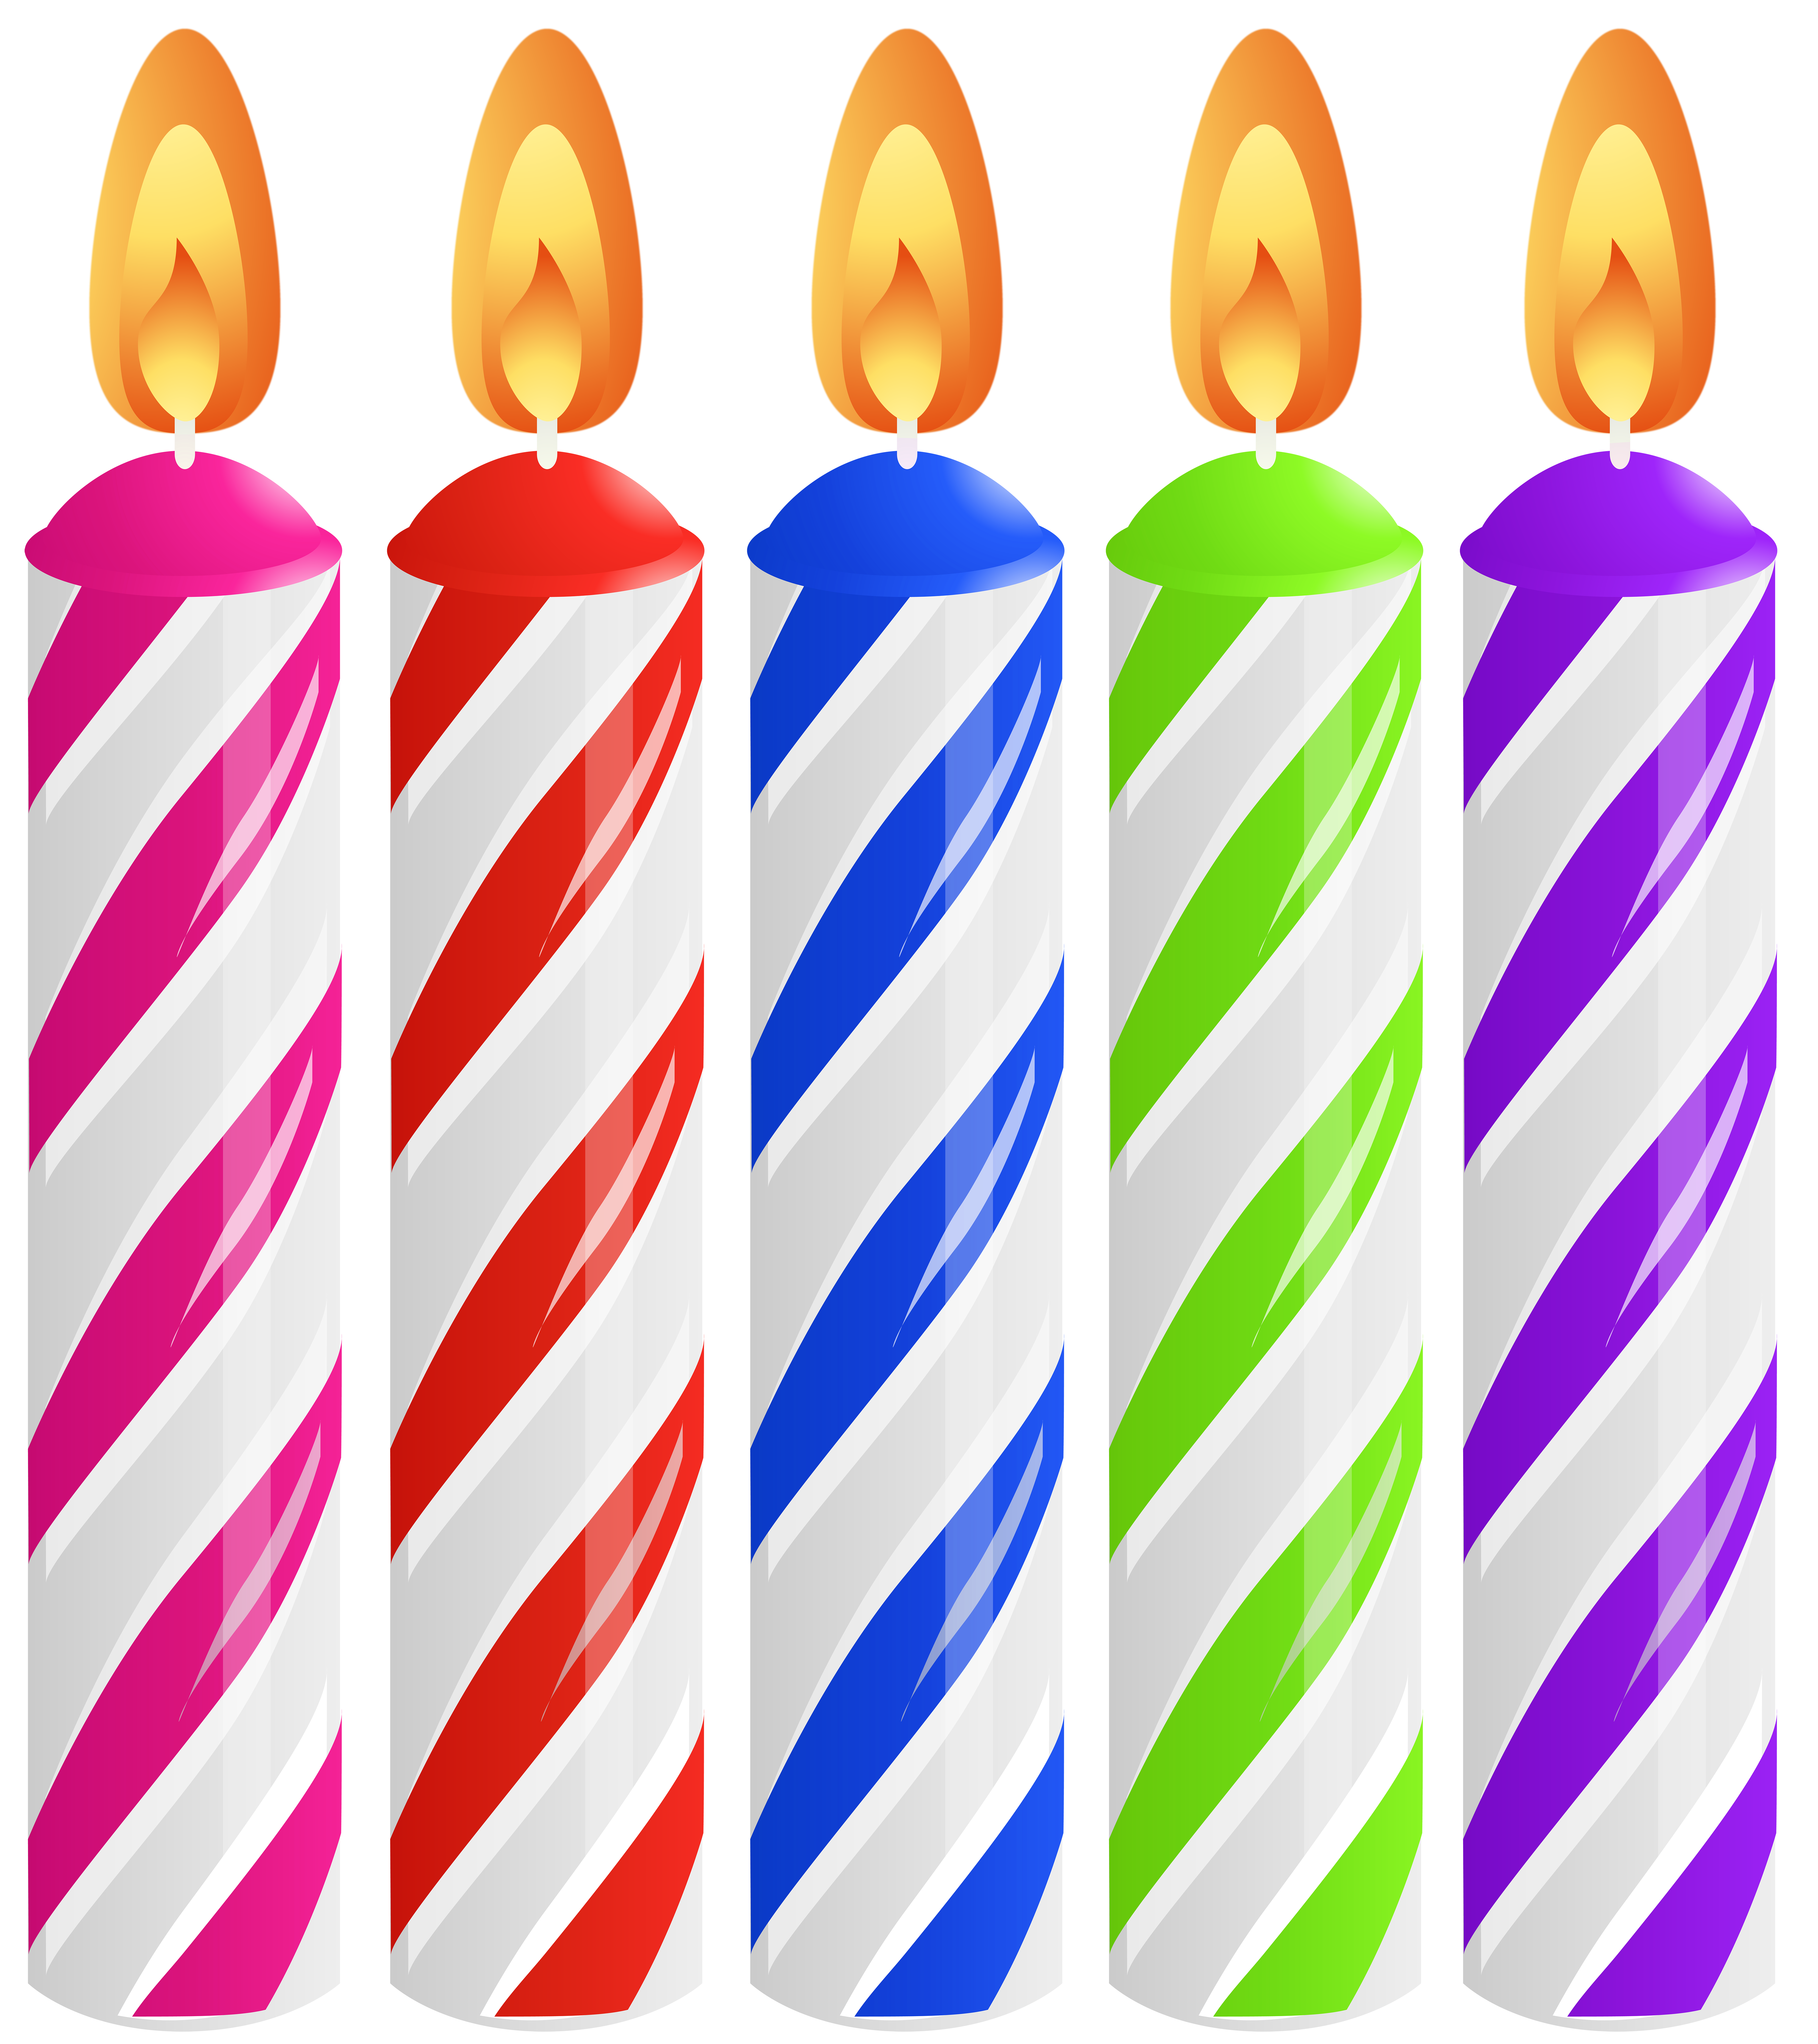 Birthday Cake Candles PNG Clip Art Image.